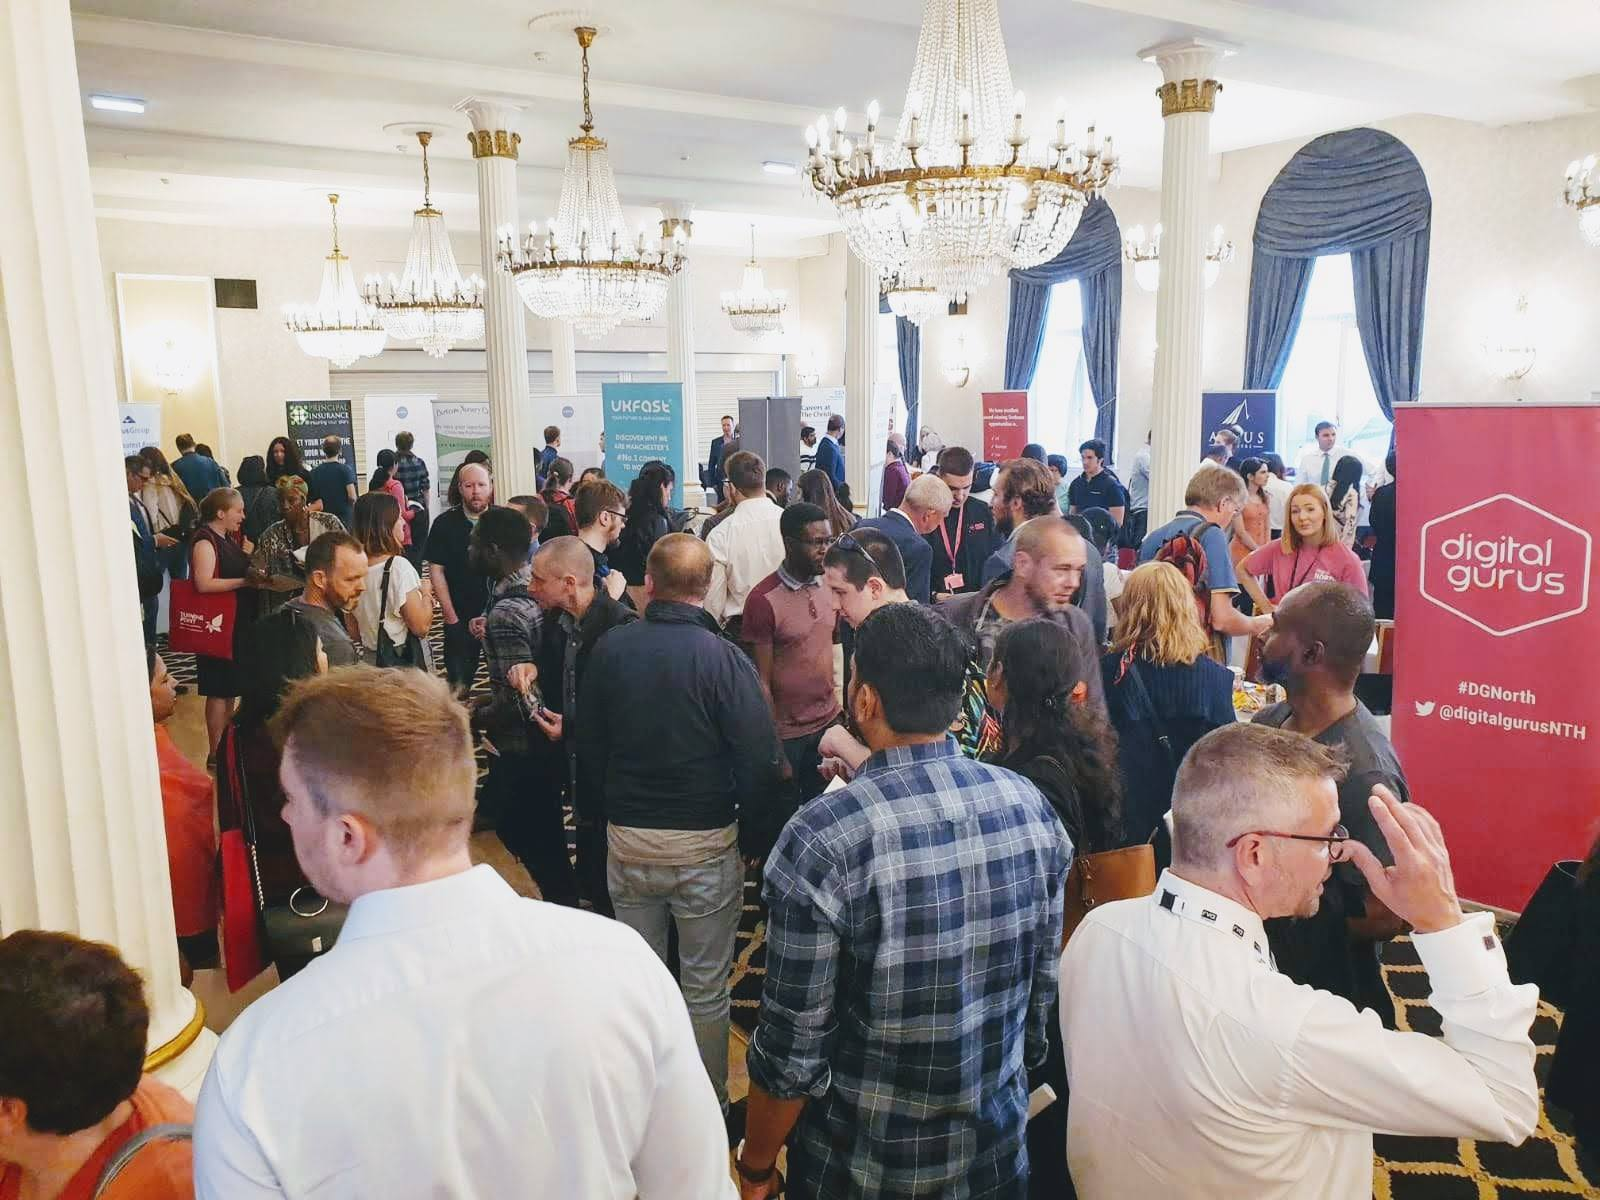 Meet hundreds of candidates, all in one place - The UK Careers Fair is a hugely popular event for job seekers and is an unmissable platform for any local business to utilise. Organisations have found that the opportunity to advertise available roles to the wider local community has proved invaluable.